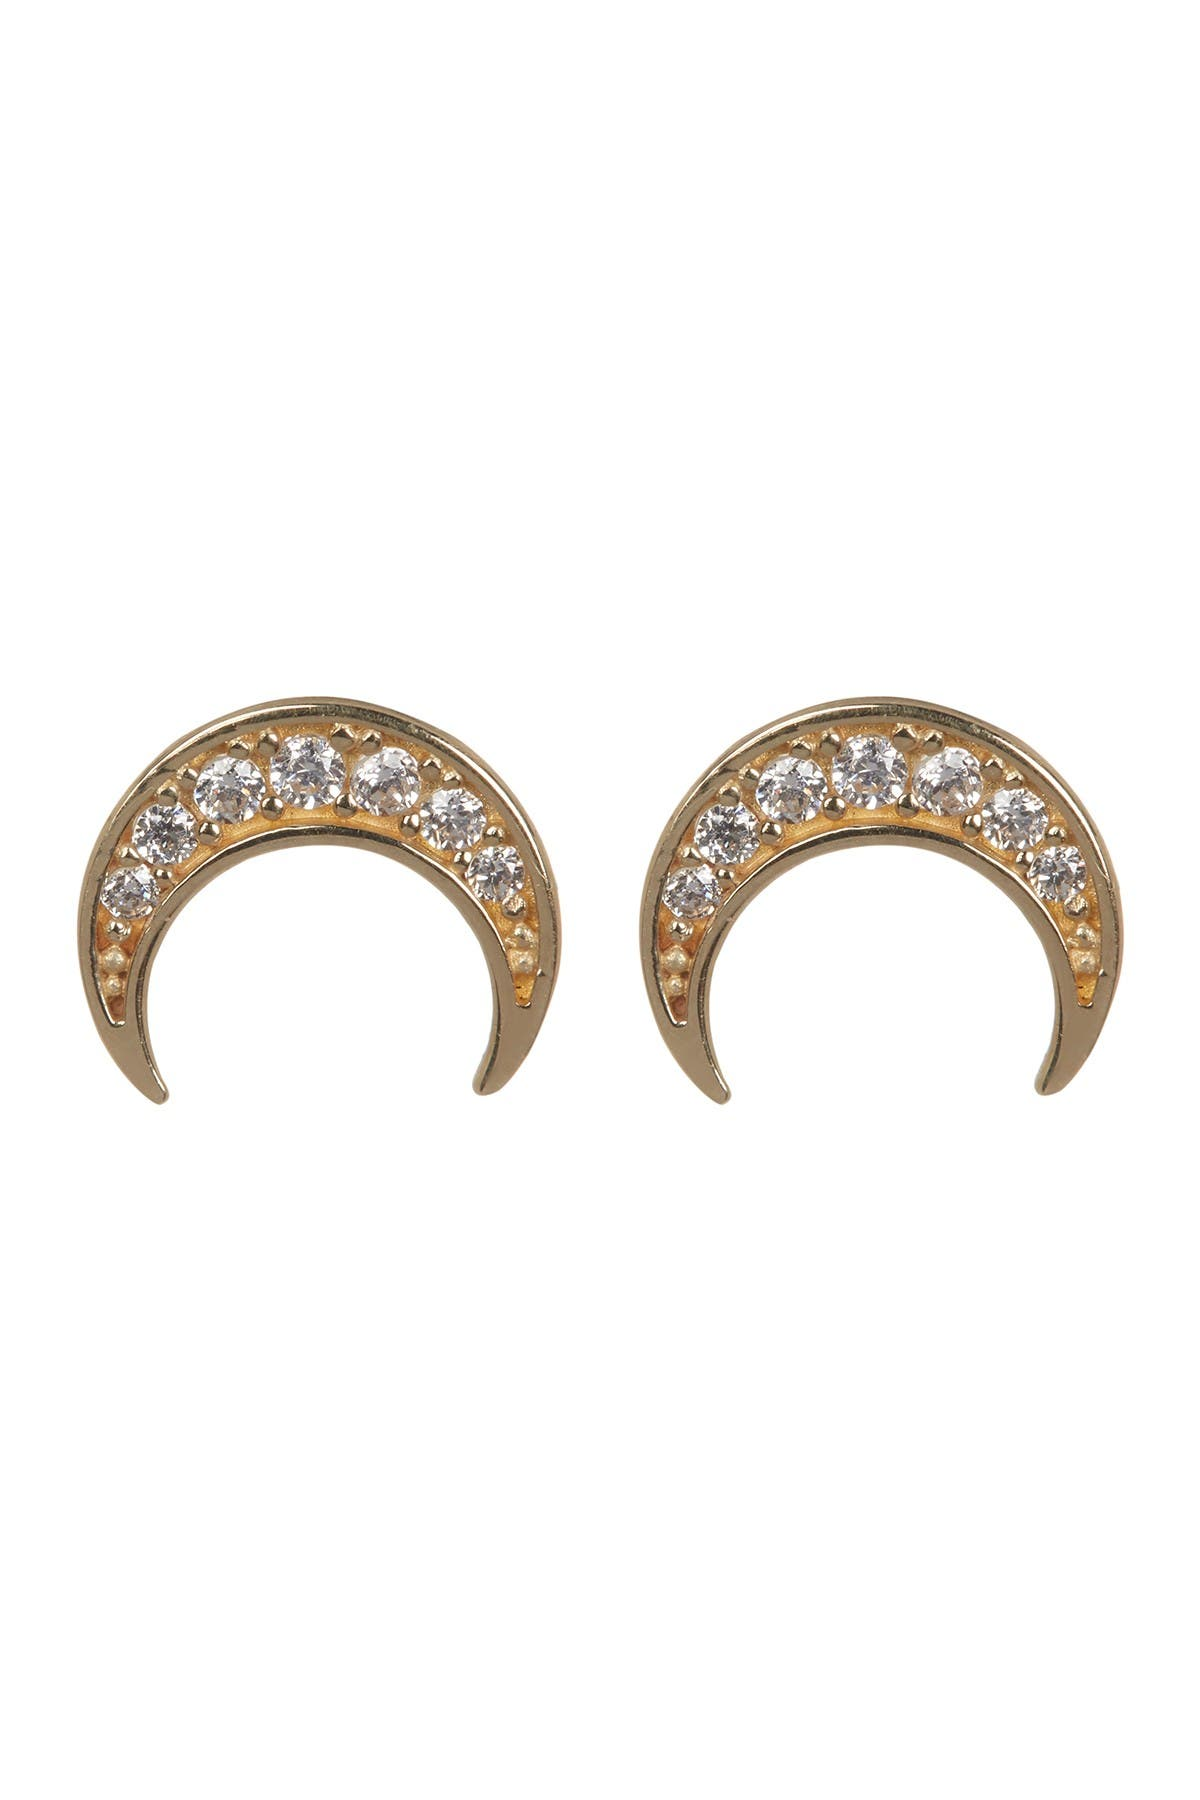 Image of Candela 14K Yellow Gold Pave CZ Crescent Moon Stud Earrings